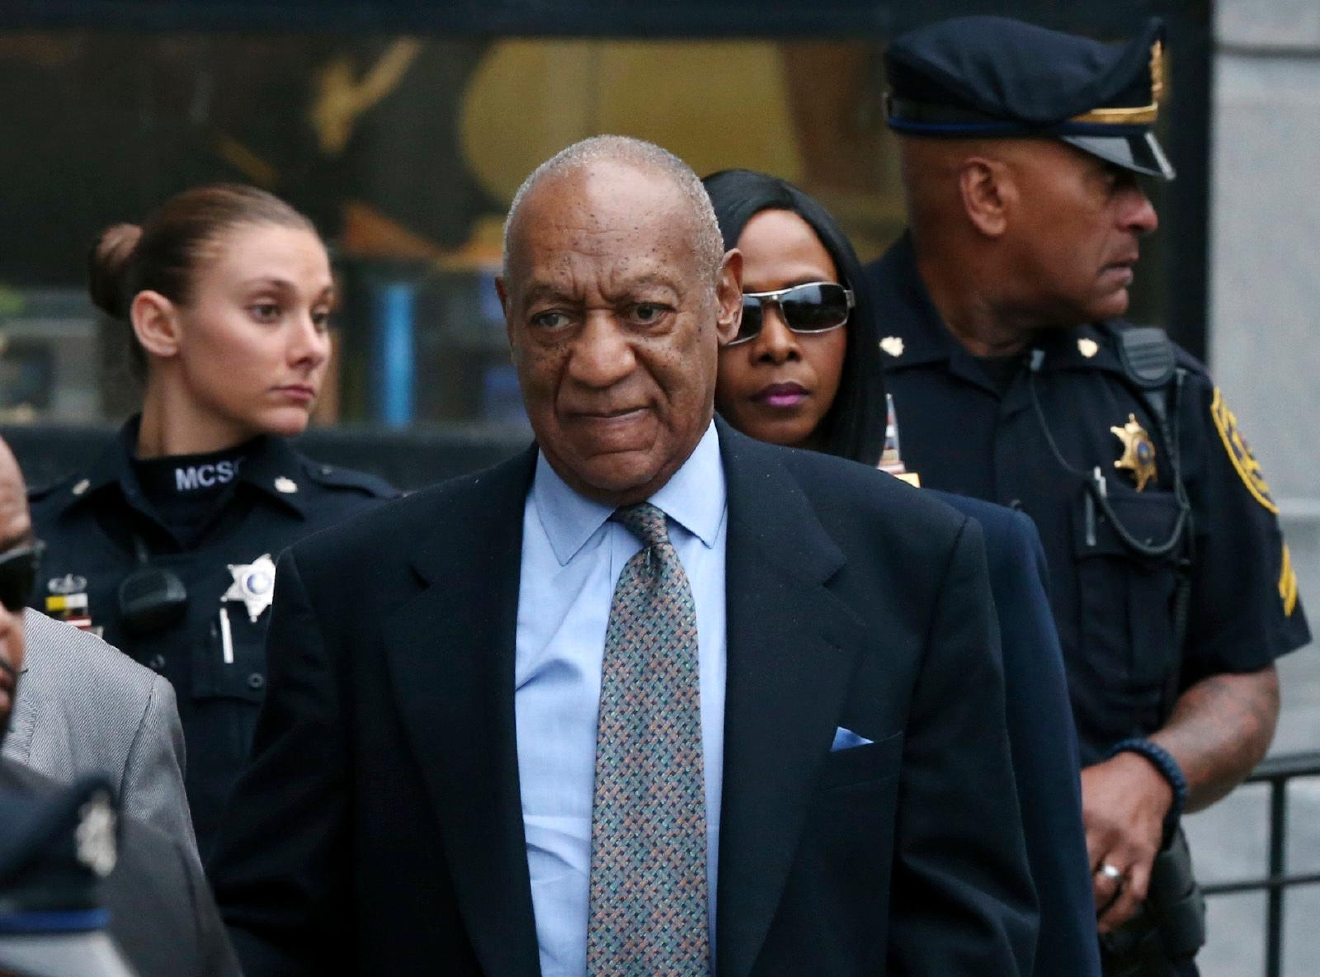 FILE - In this Nov. 1, 2016 file photo, Bill Cosby leaves after a hearing in his sexual assault case at the Montgomery County Courthouse in Norristown, Pa. Lawyers for Cosby will battle in court starting Tuesday, Dec. 13, to try to limit the number of other accusers who can testify at the comedian's sexual assault trial. (AP Photo/Mel Evans, File)